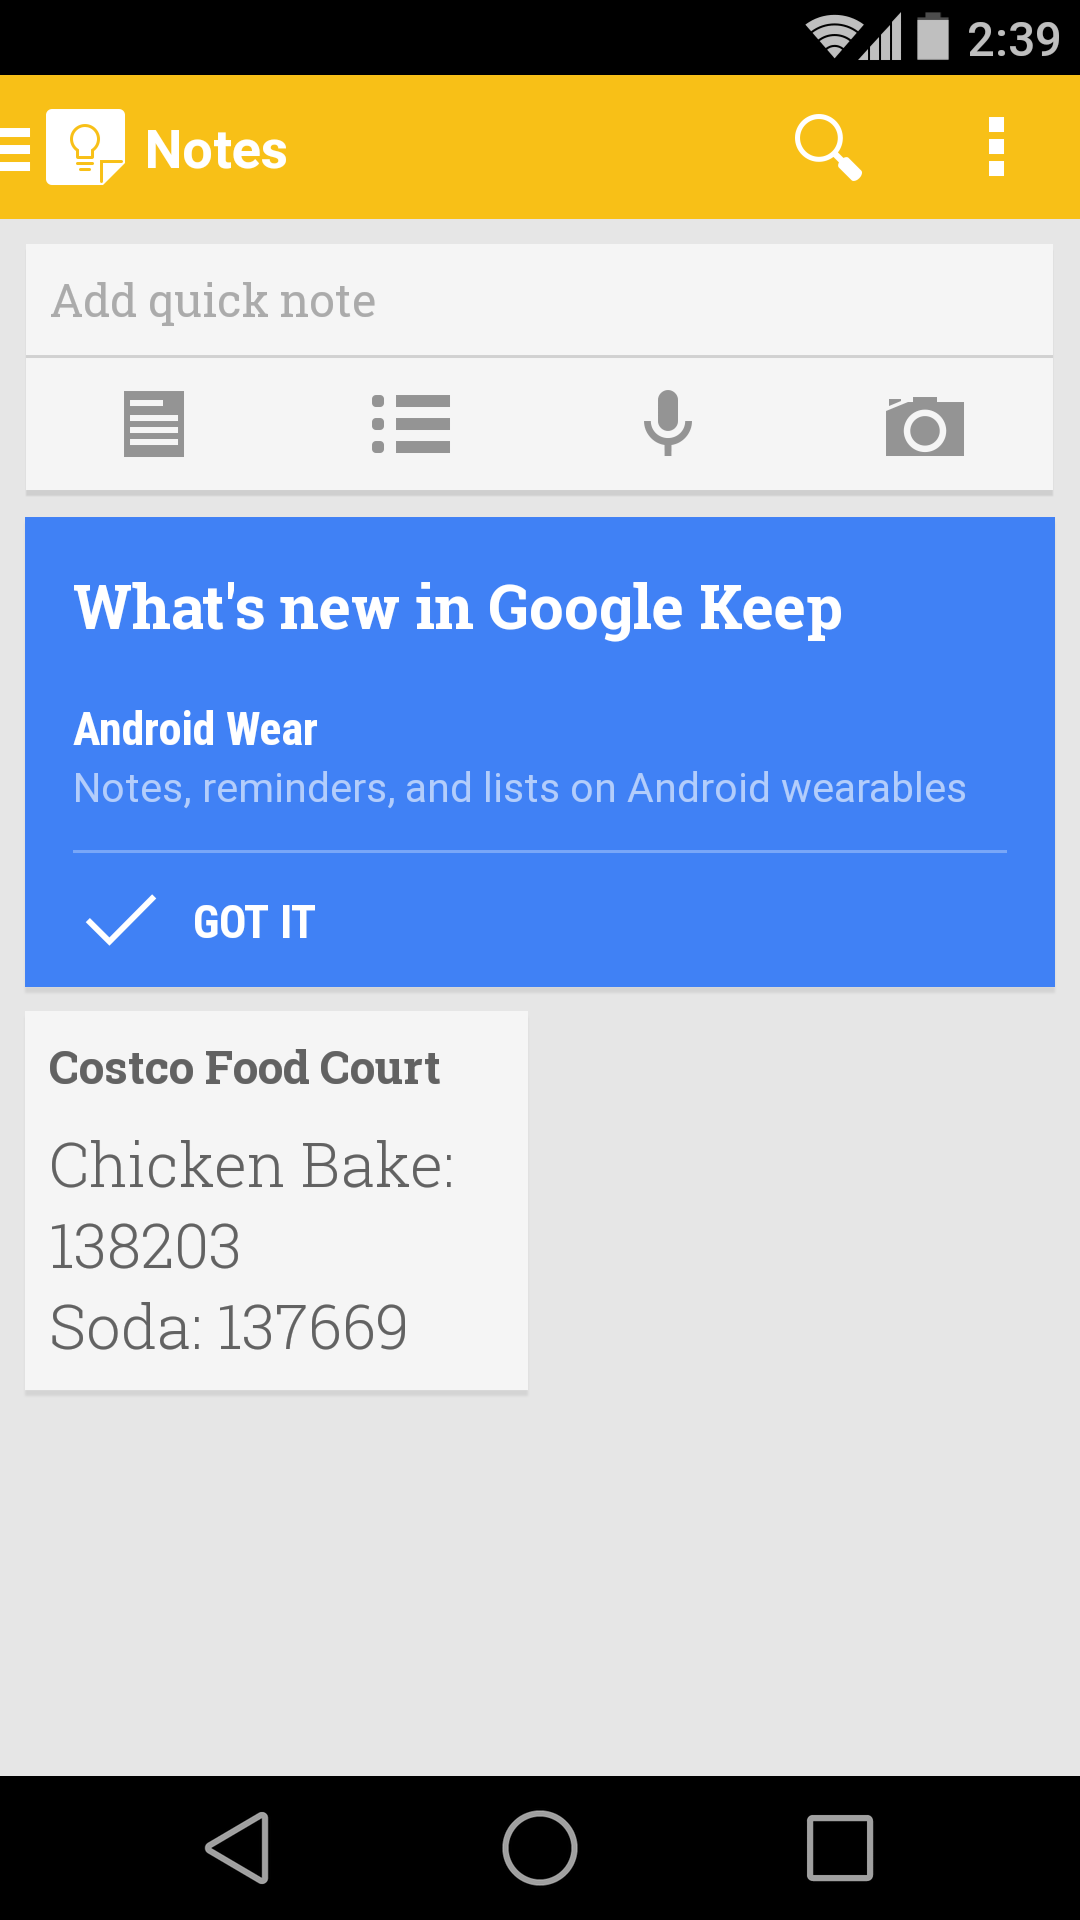 APK] Google Keep 2 3 Gets Android Wear Support, YouTube and Play